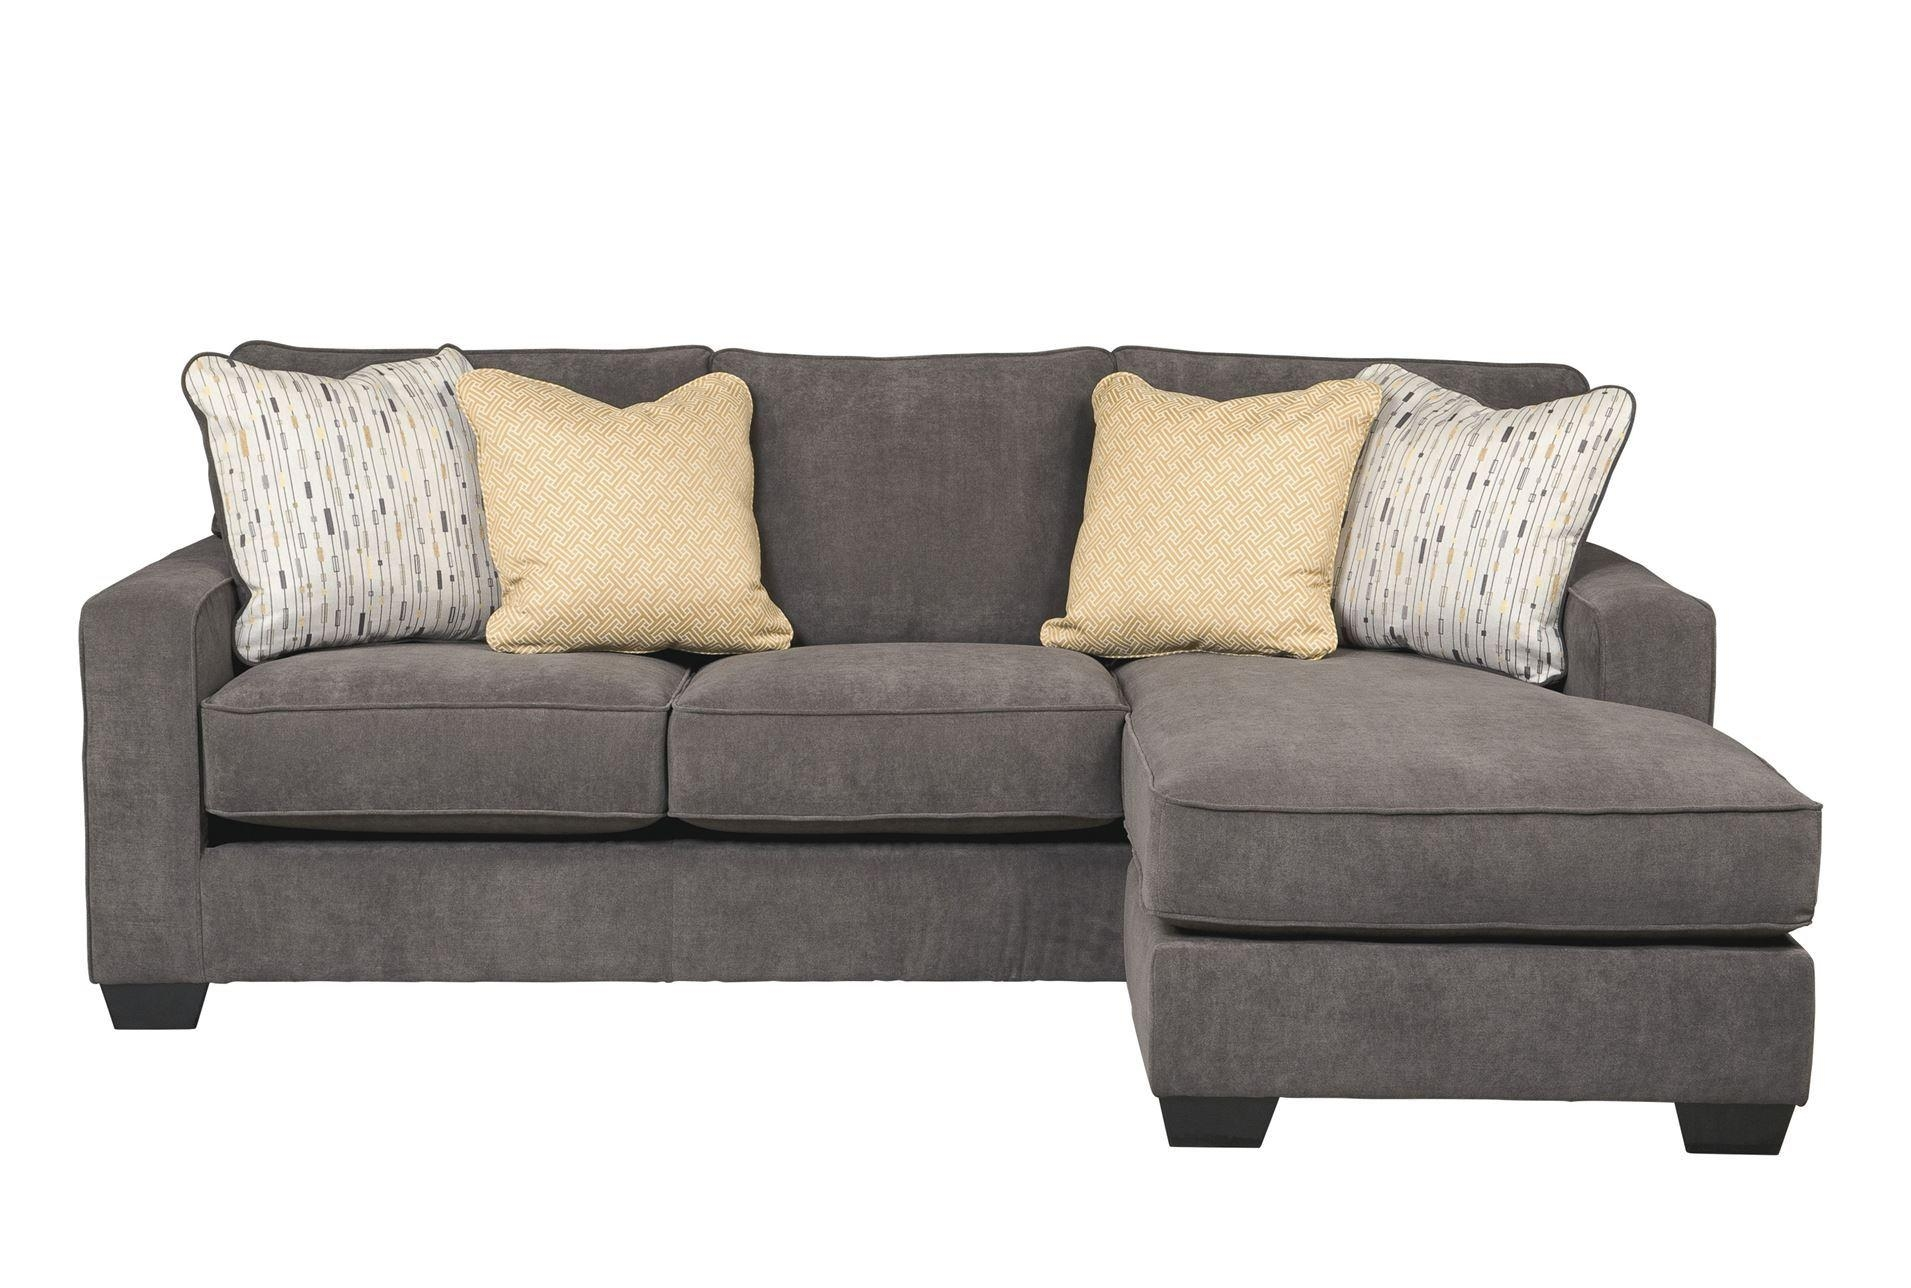 Sofa With Chaise Lounge – Helpformycredit With Sofas With Chaise Longue (Image 16 of 20)